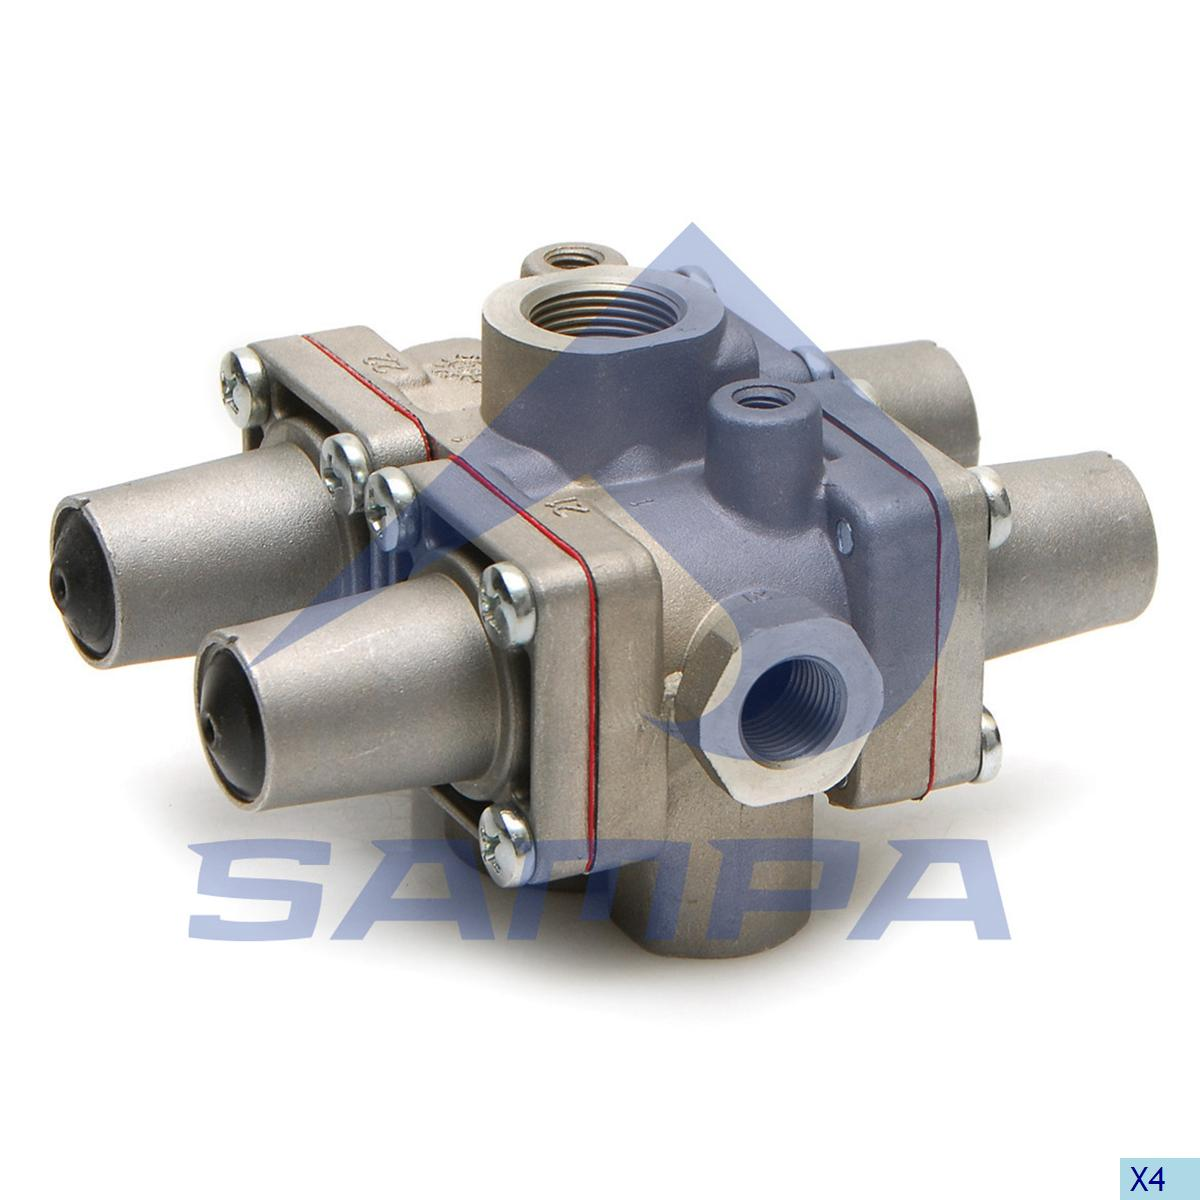 Multiway Valve, Mercedes, Compressed Air System